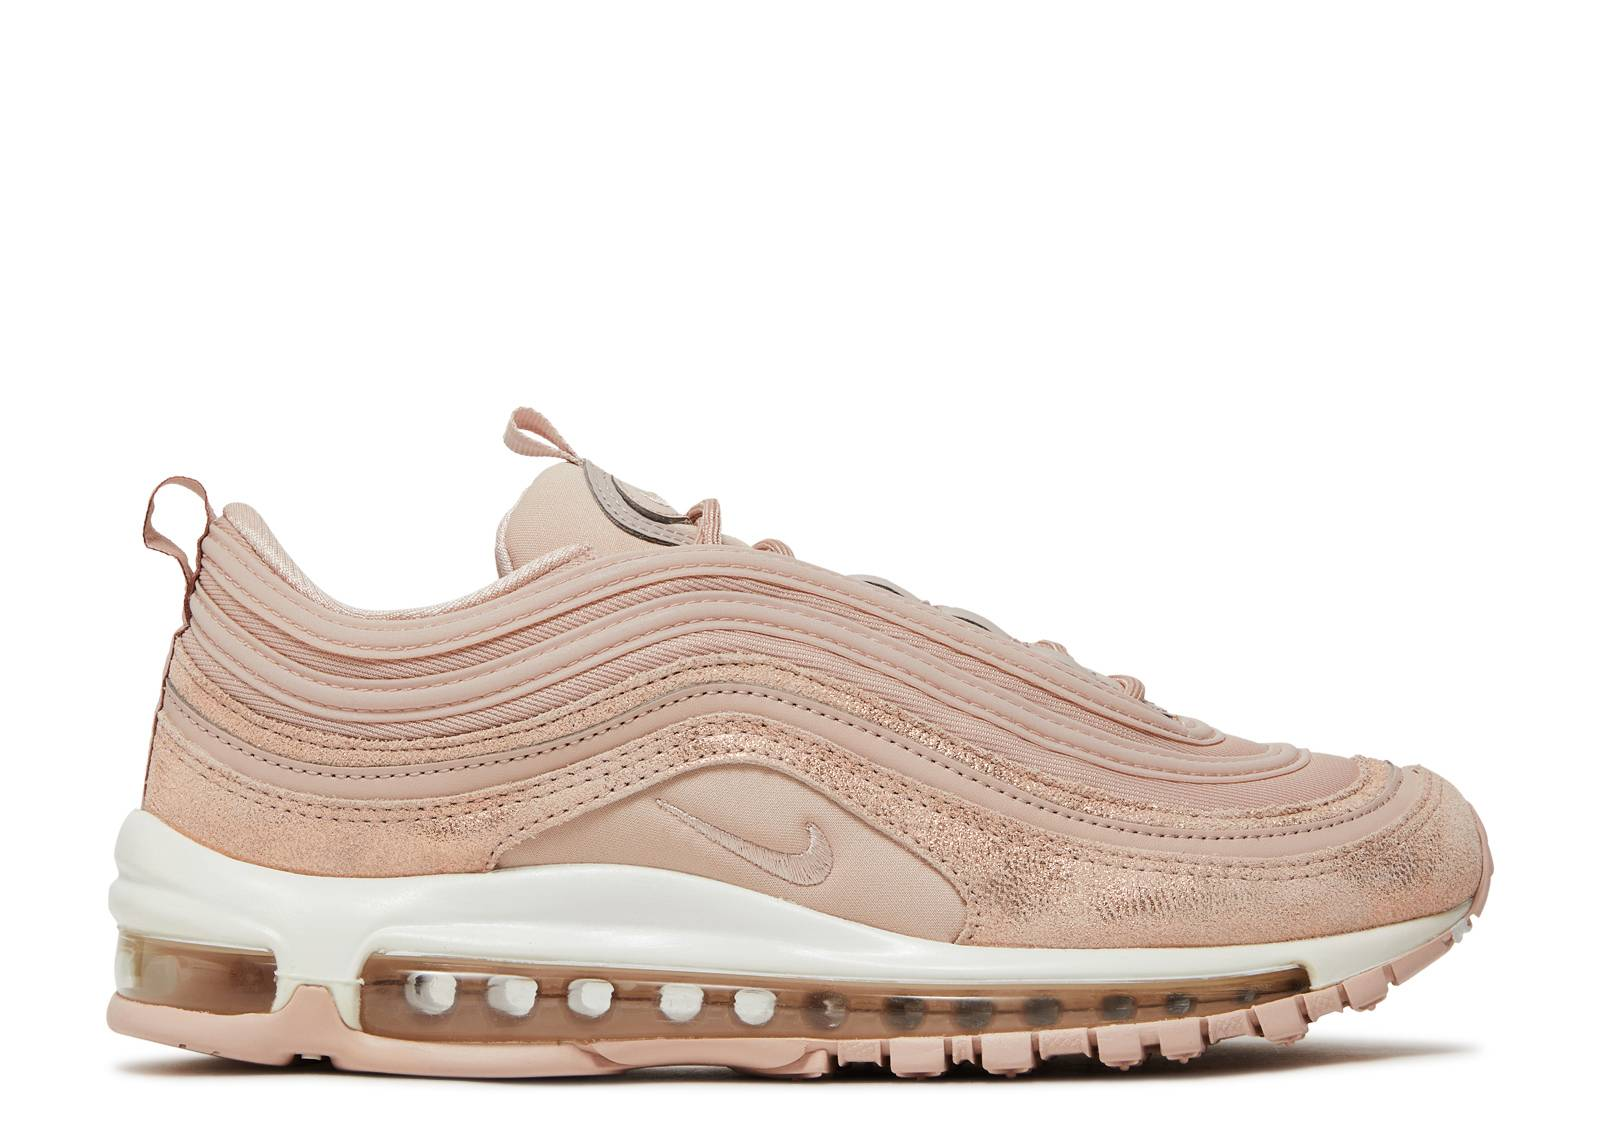 nike air max 97 particle beige for sale